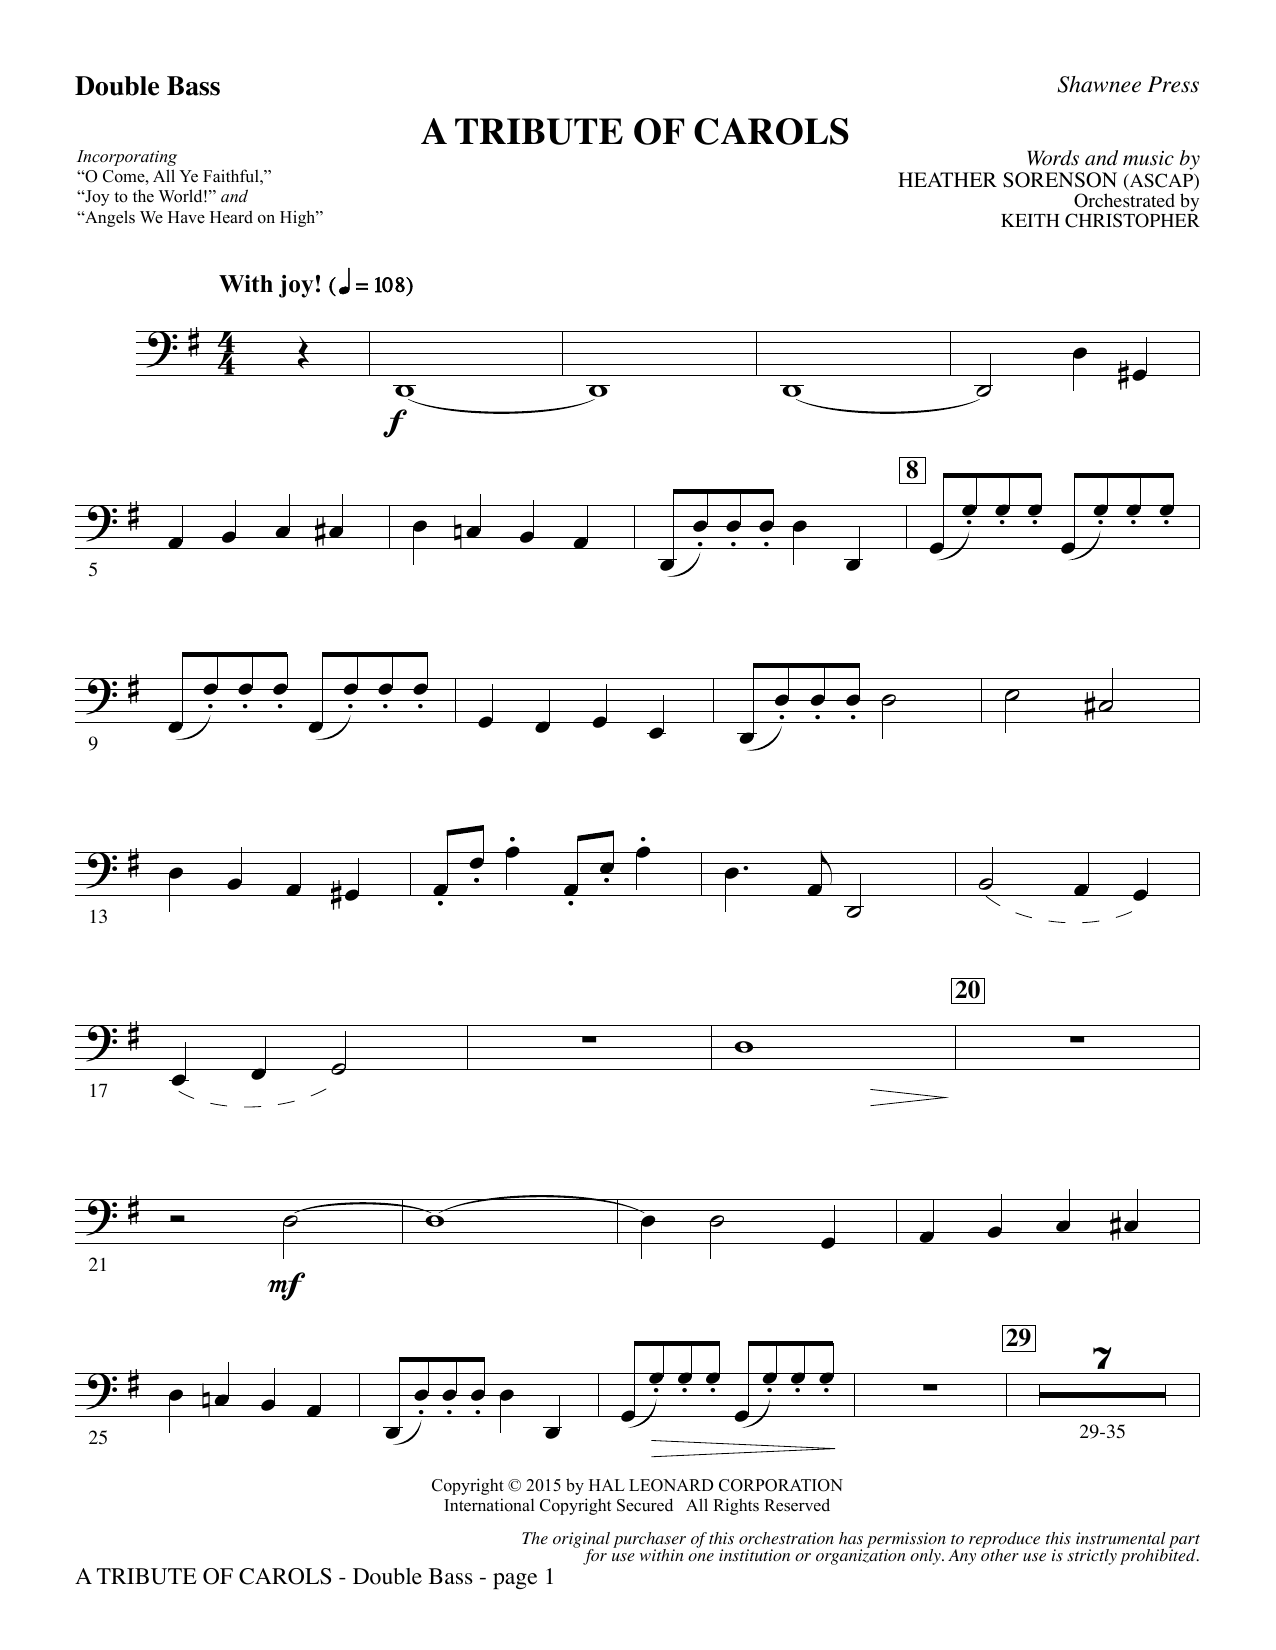 Download Heather Sorenson 'A Tribute of Carols - Double Bass' Digital Sheet Music Notes & Chords and start playing in minutes